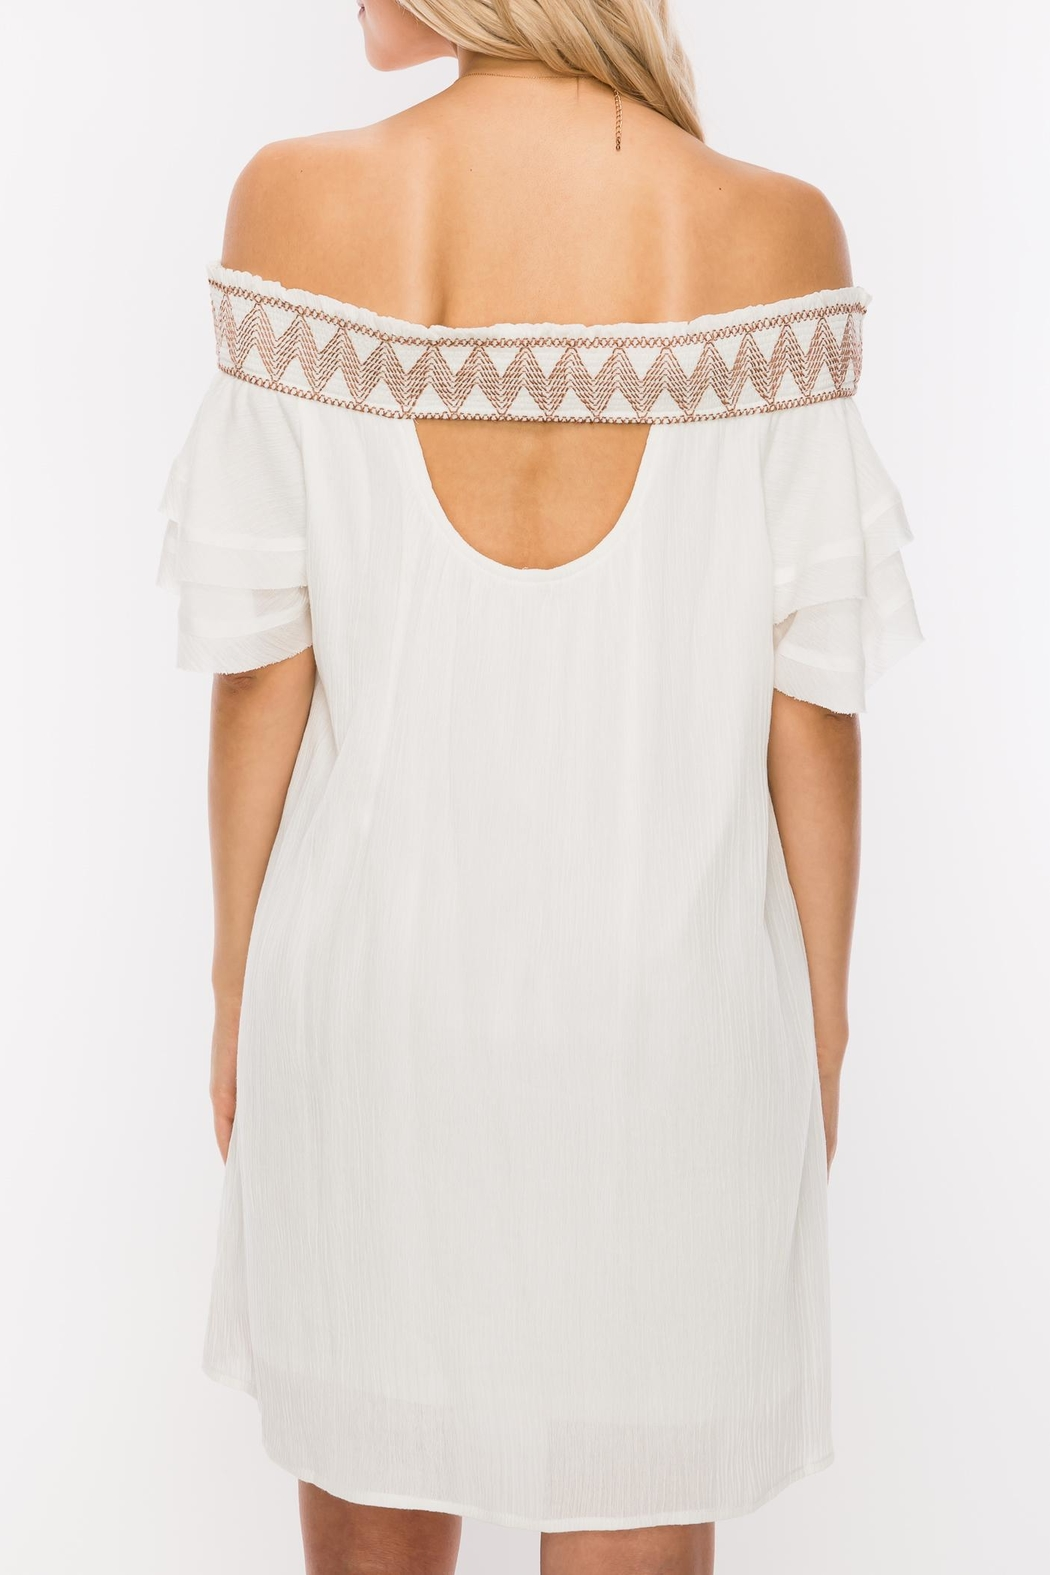 HYFVE Stitch Embroidered Dress - Front Full Image